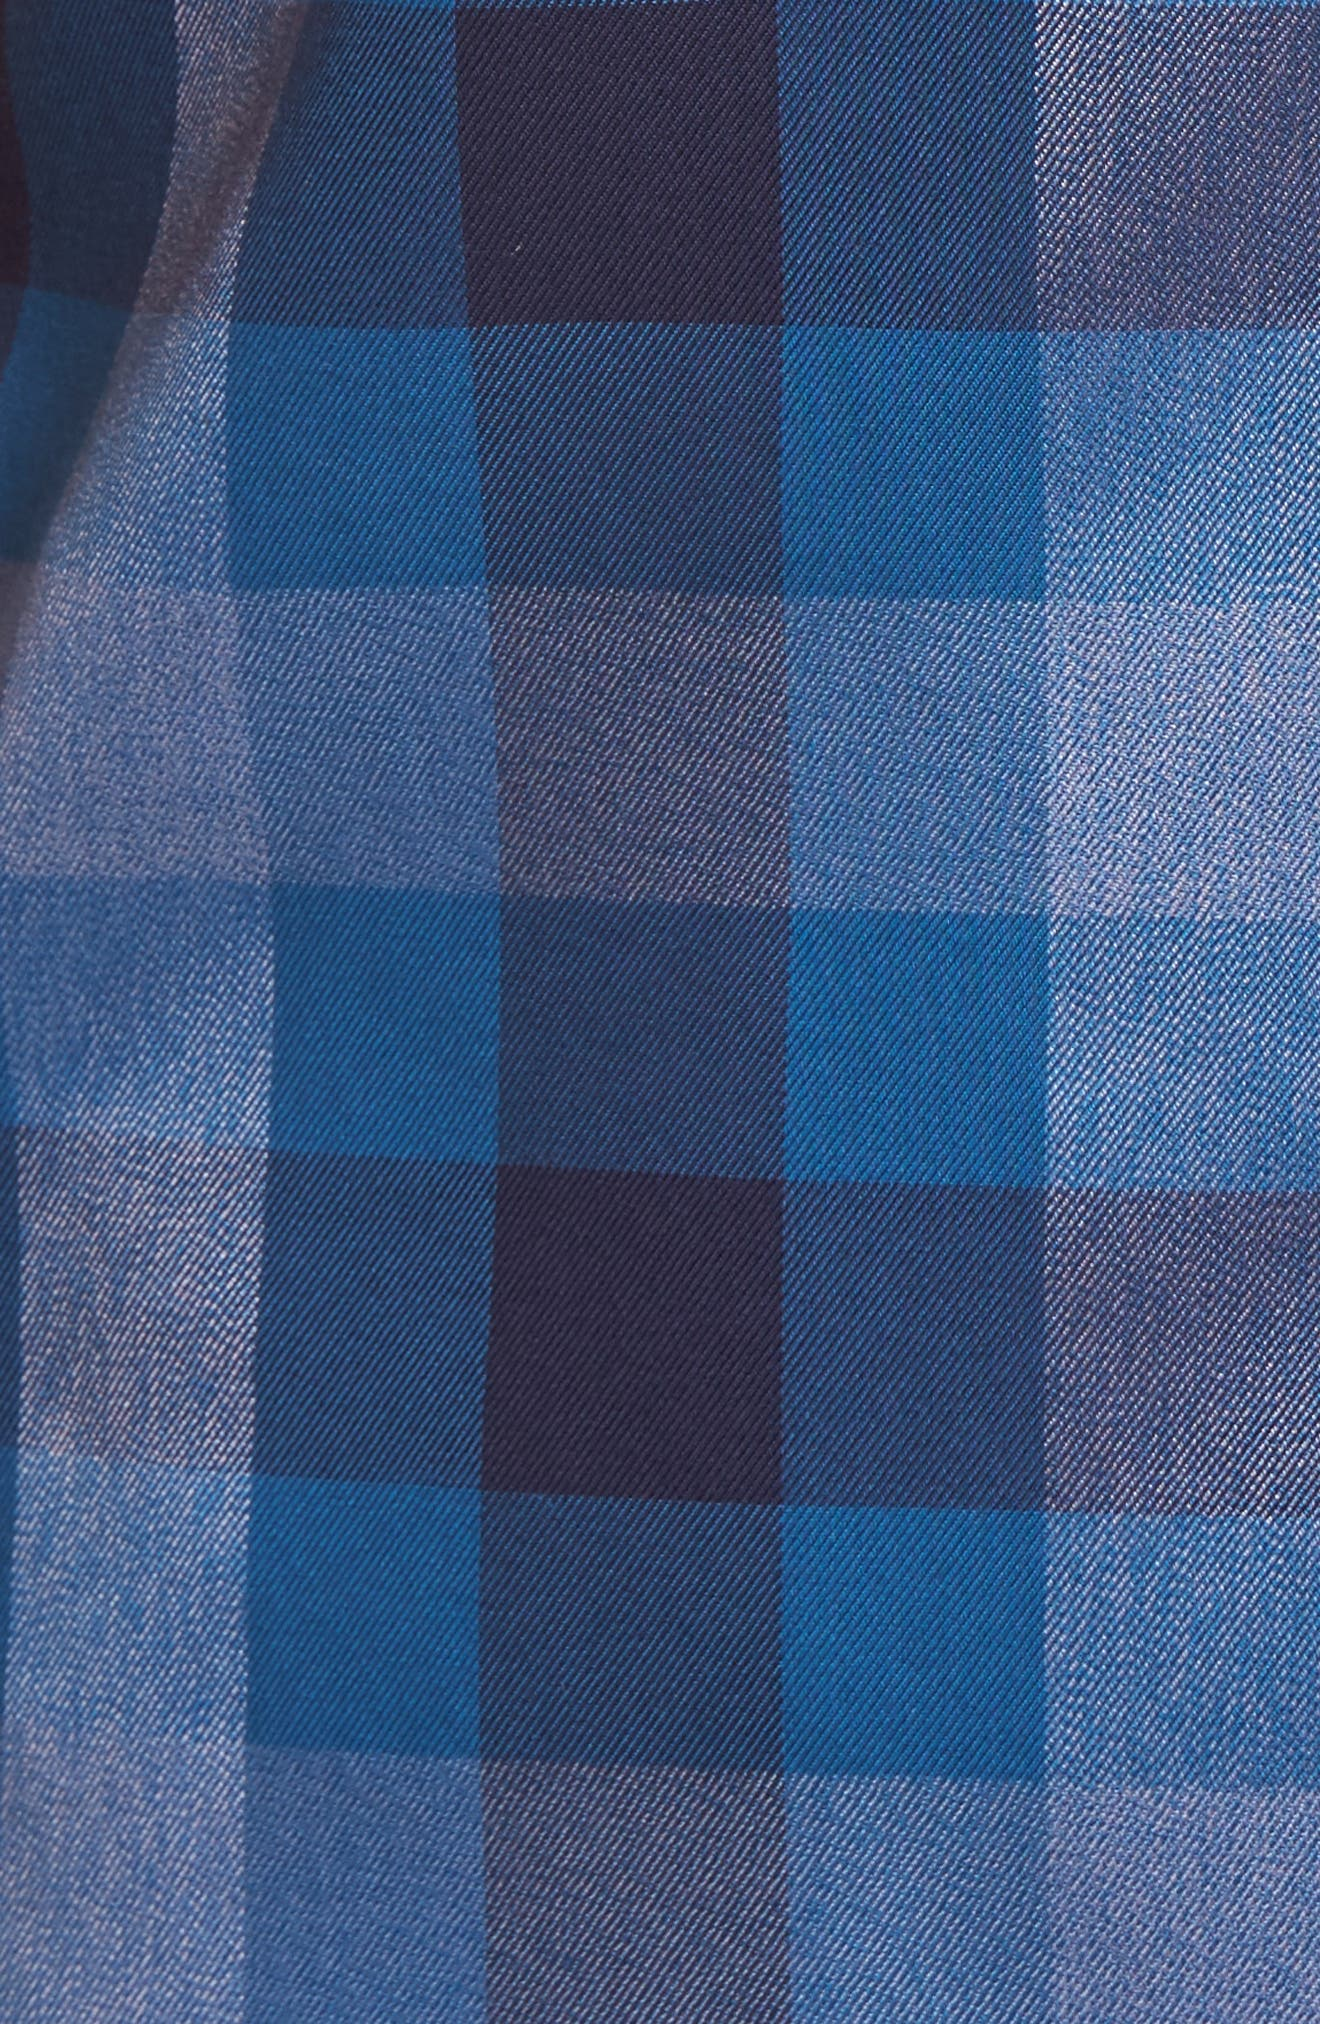 No-Iron Large Check Woven Shirt,                             Alternate thumbnail 5, color,                             410